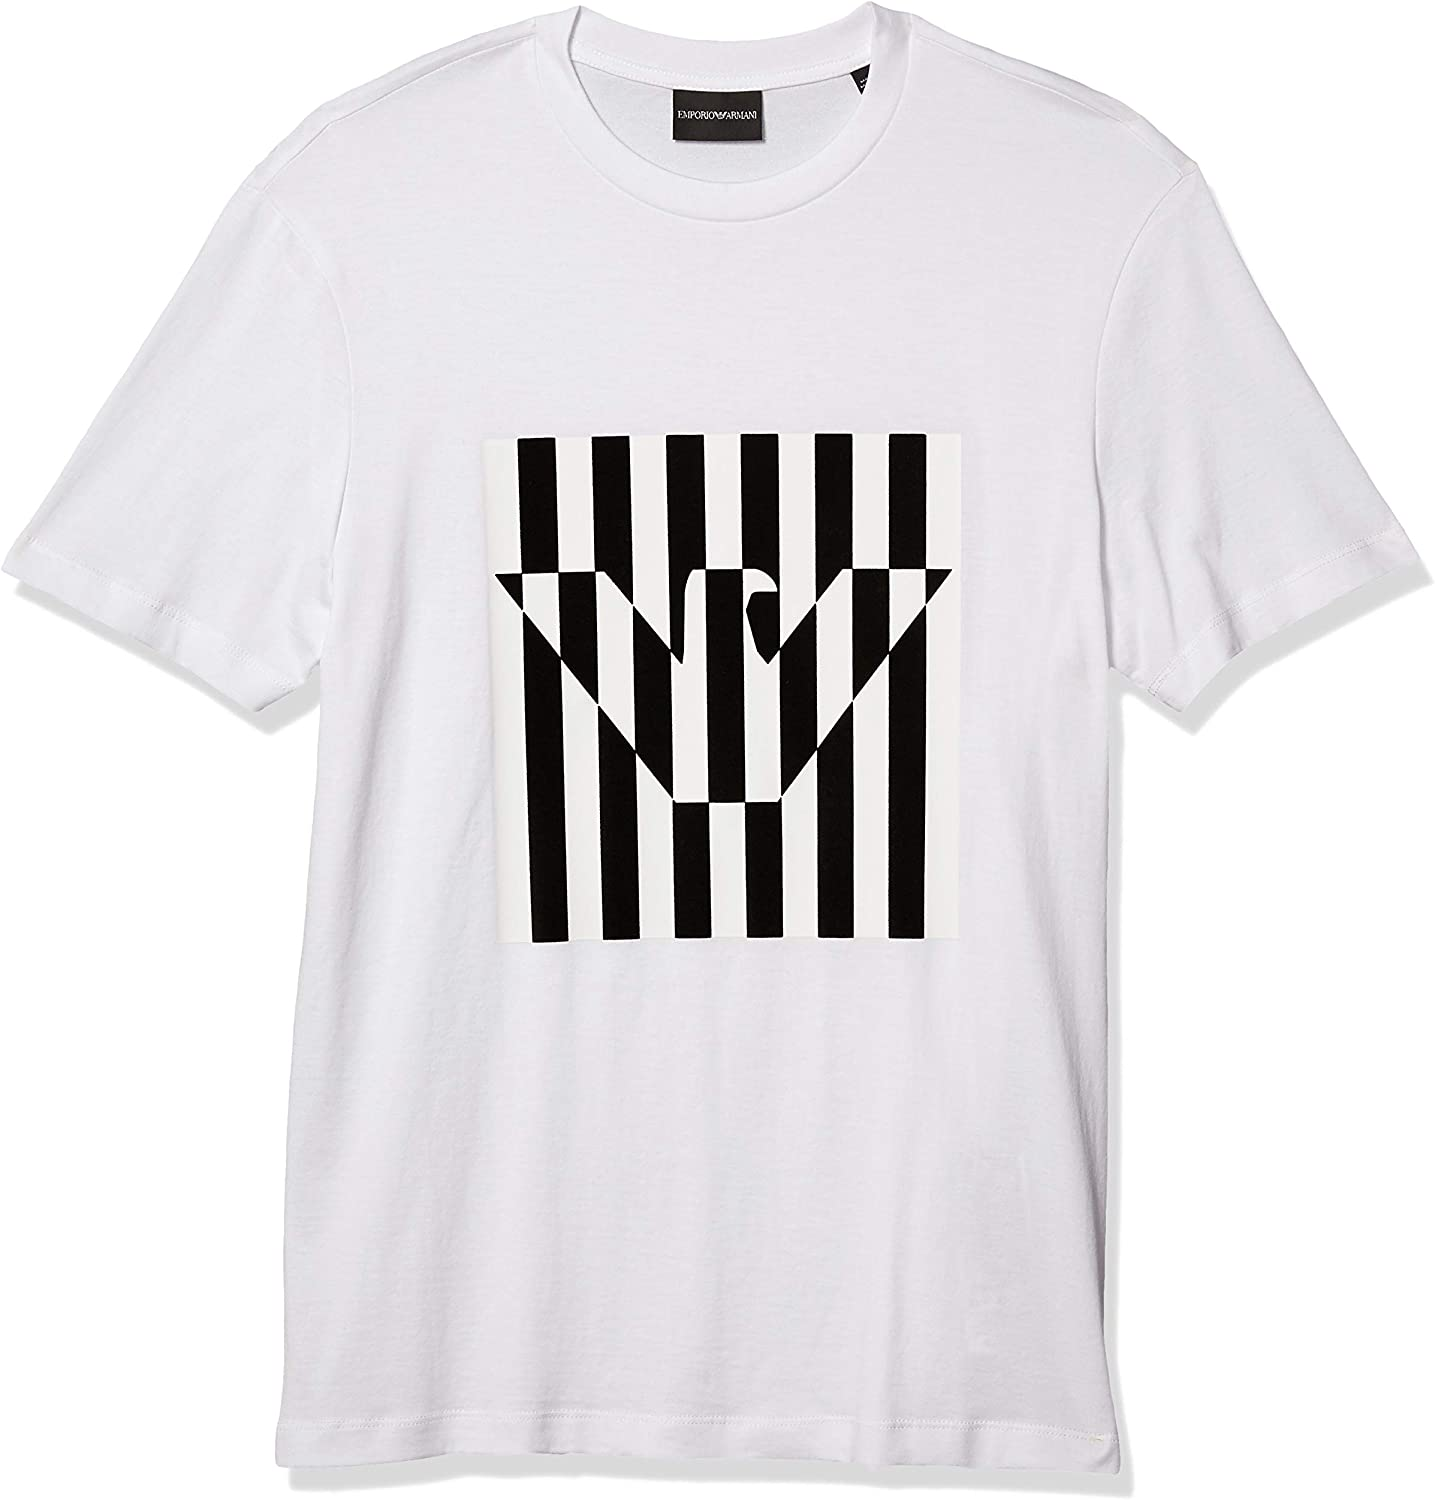 2021 spring and summer new Emporio Armani Tee Max 64% OFF Men's